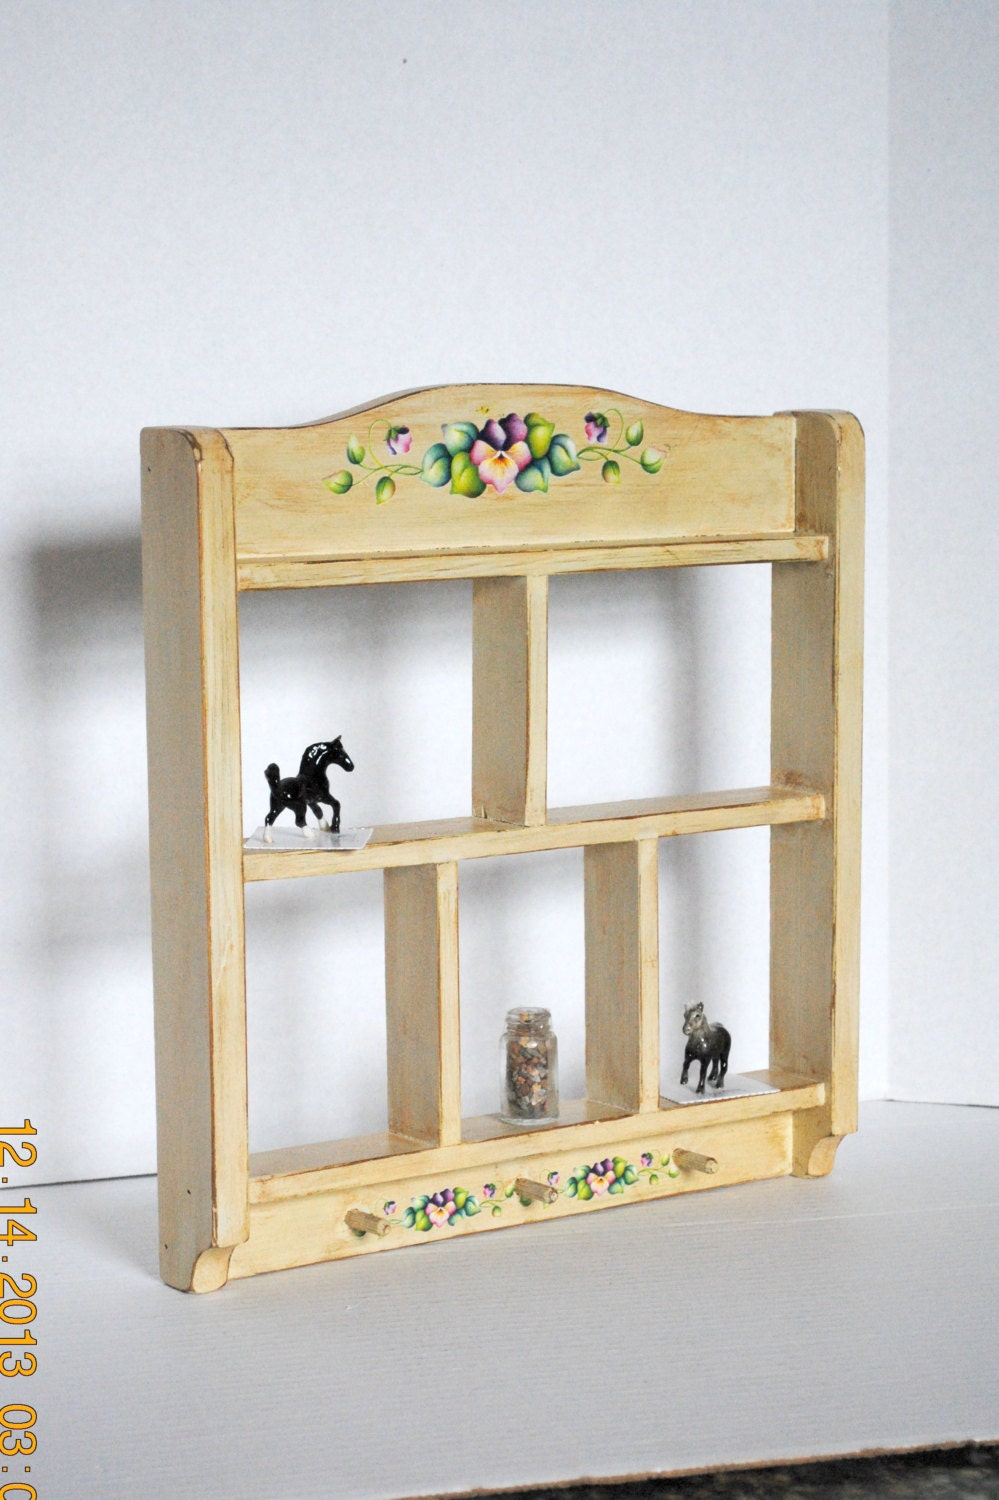 Shabby chic wood shelf knick knac key pony tail jewelry for Bathroom knick knacks